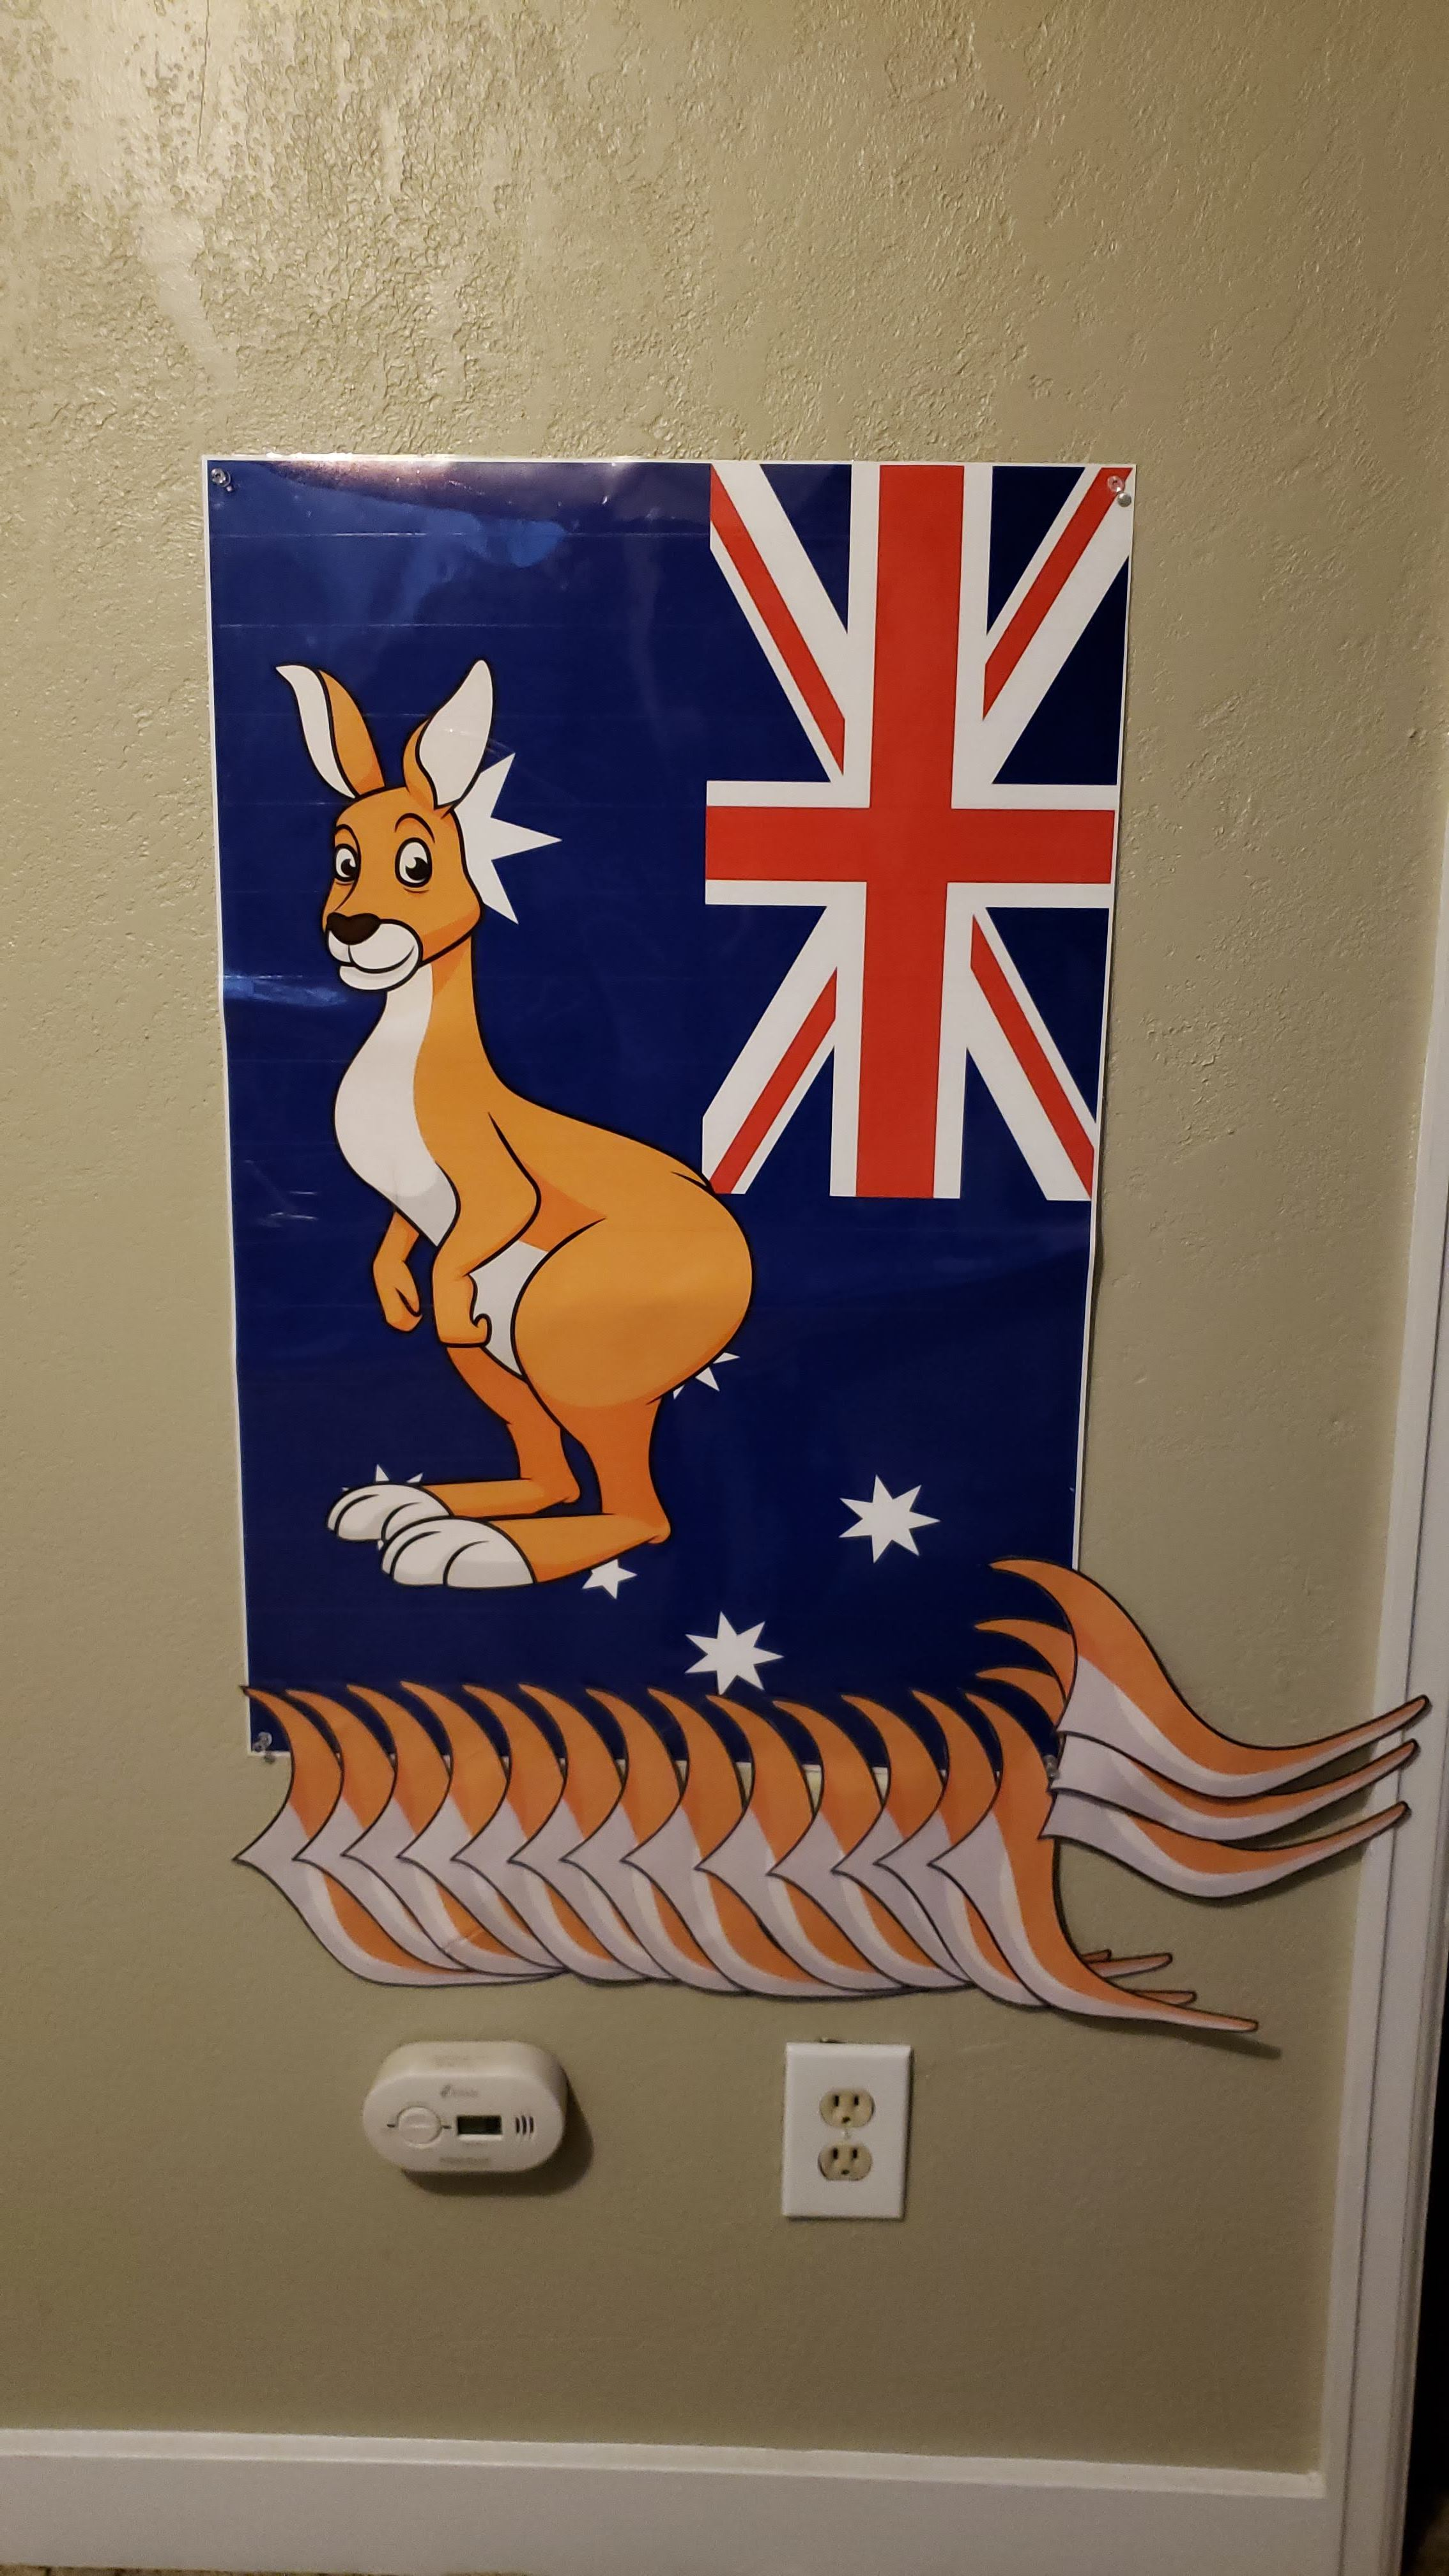 Pin the tail on the kangaroo! My crafty husband designed the kangaroo/poster/tails and we had it printed for less than $10 at Walgreens.